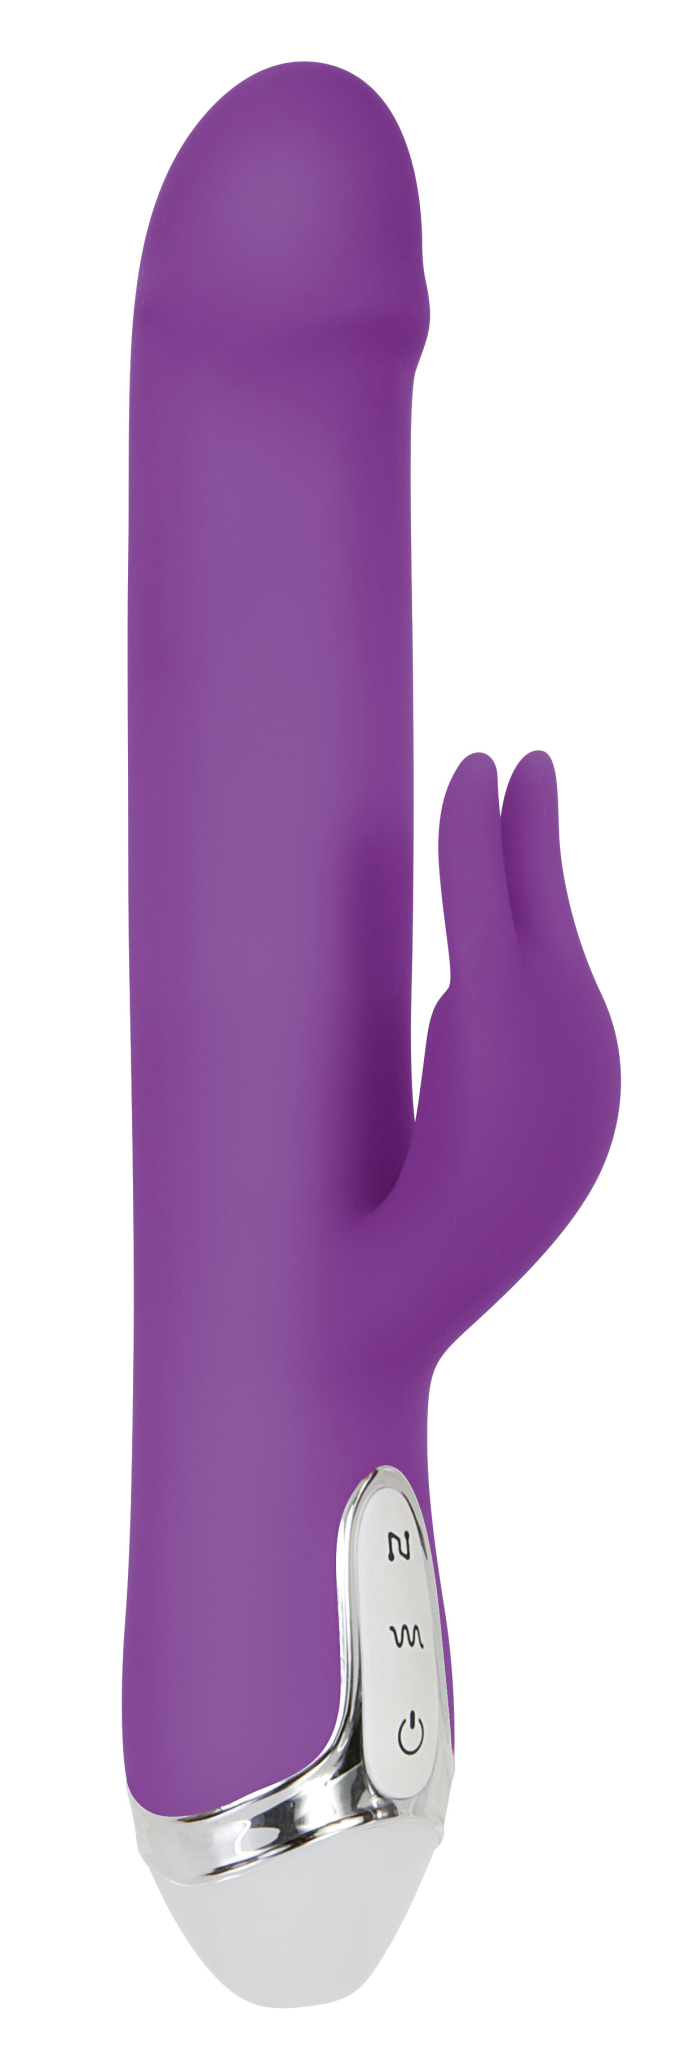 DANCING PEARL RABBIT - SILICONE RECHARGEABLE